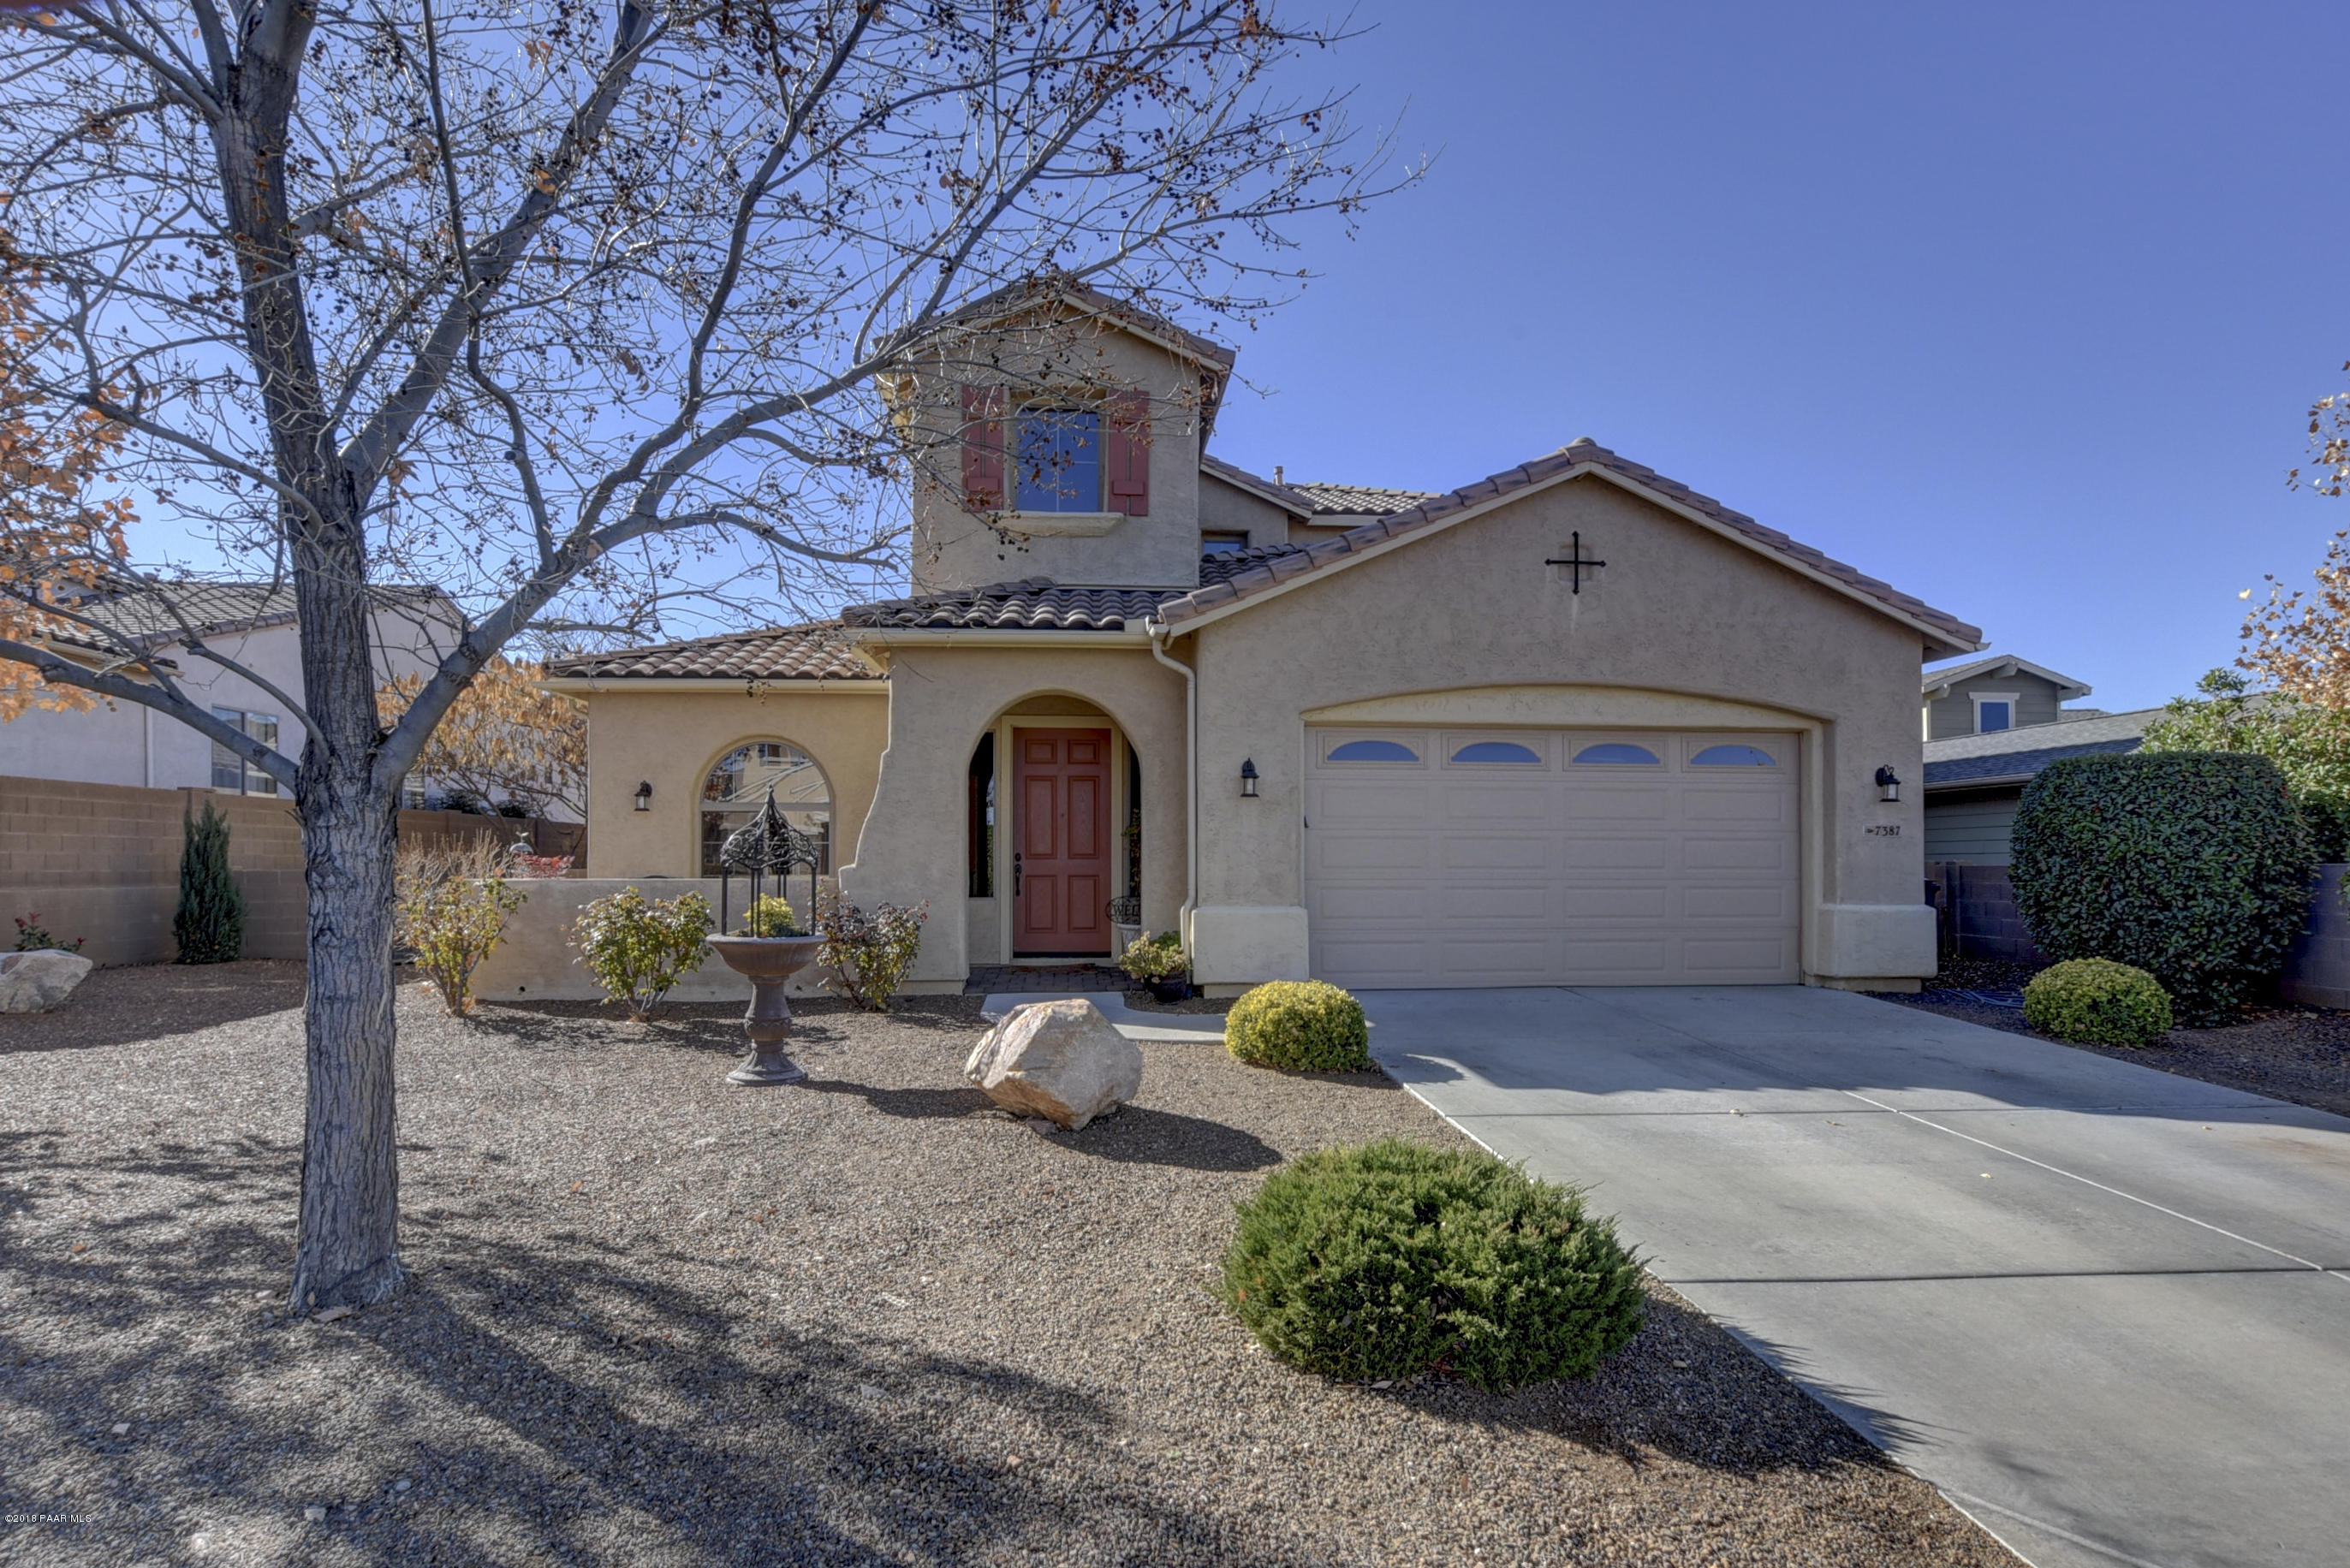 7387  Weaver Way, Prescott Valley, Arizona